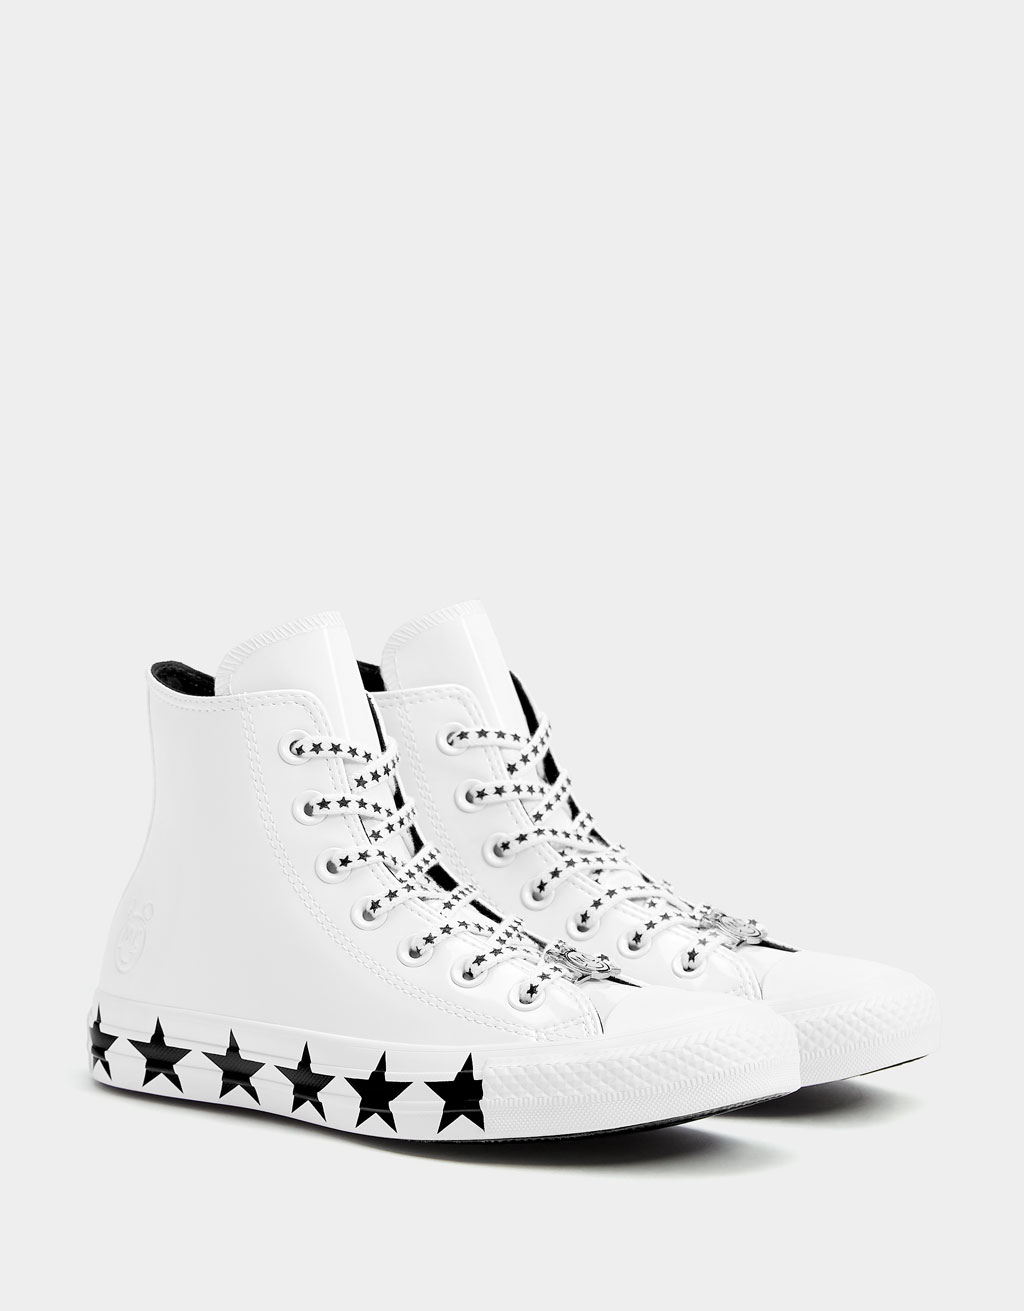 converse for miley